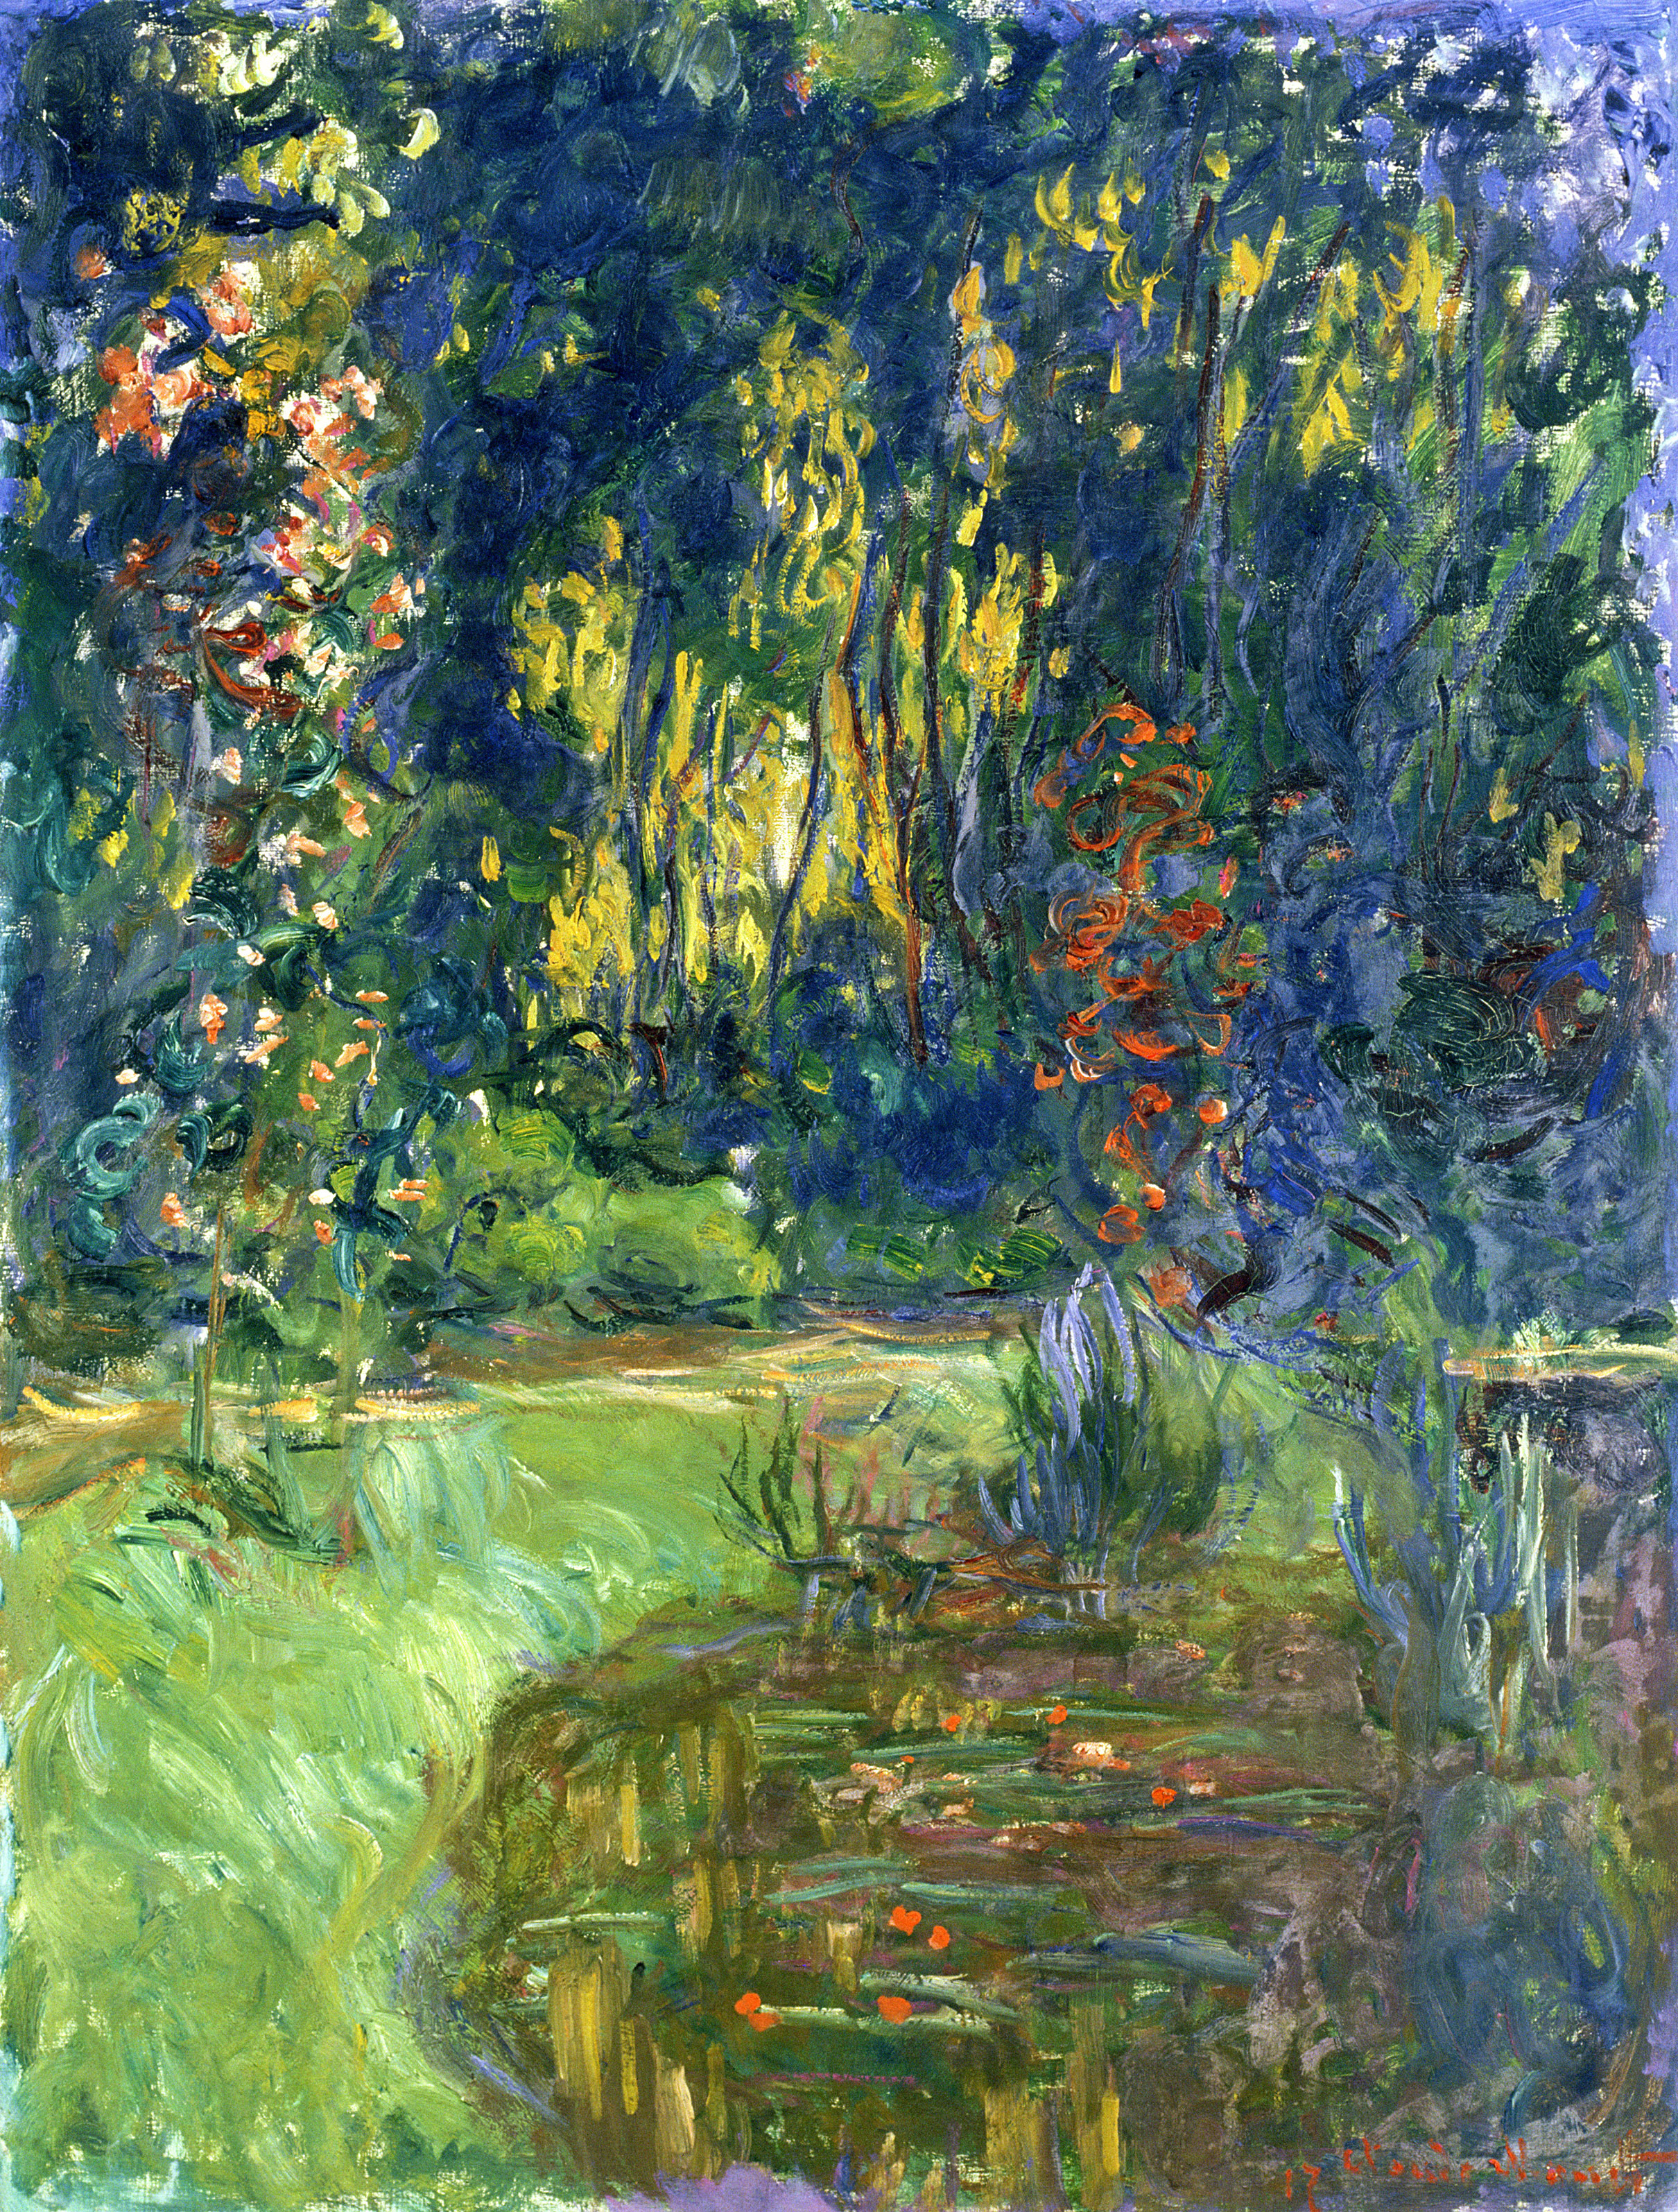 Water Lily Pond at Giverny, 1918 - 1919 - Claude Monet - WikiArt.org